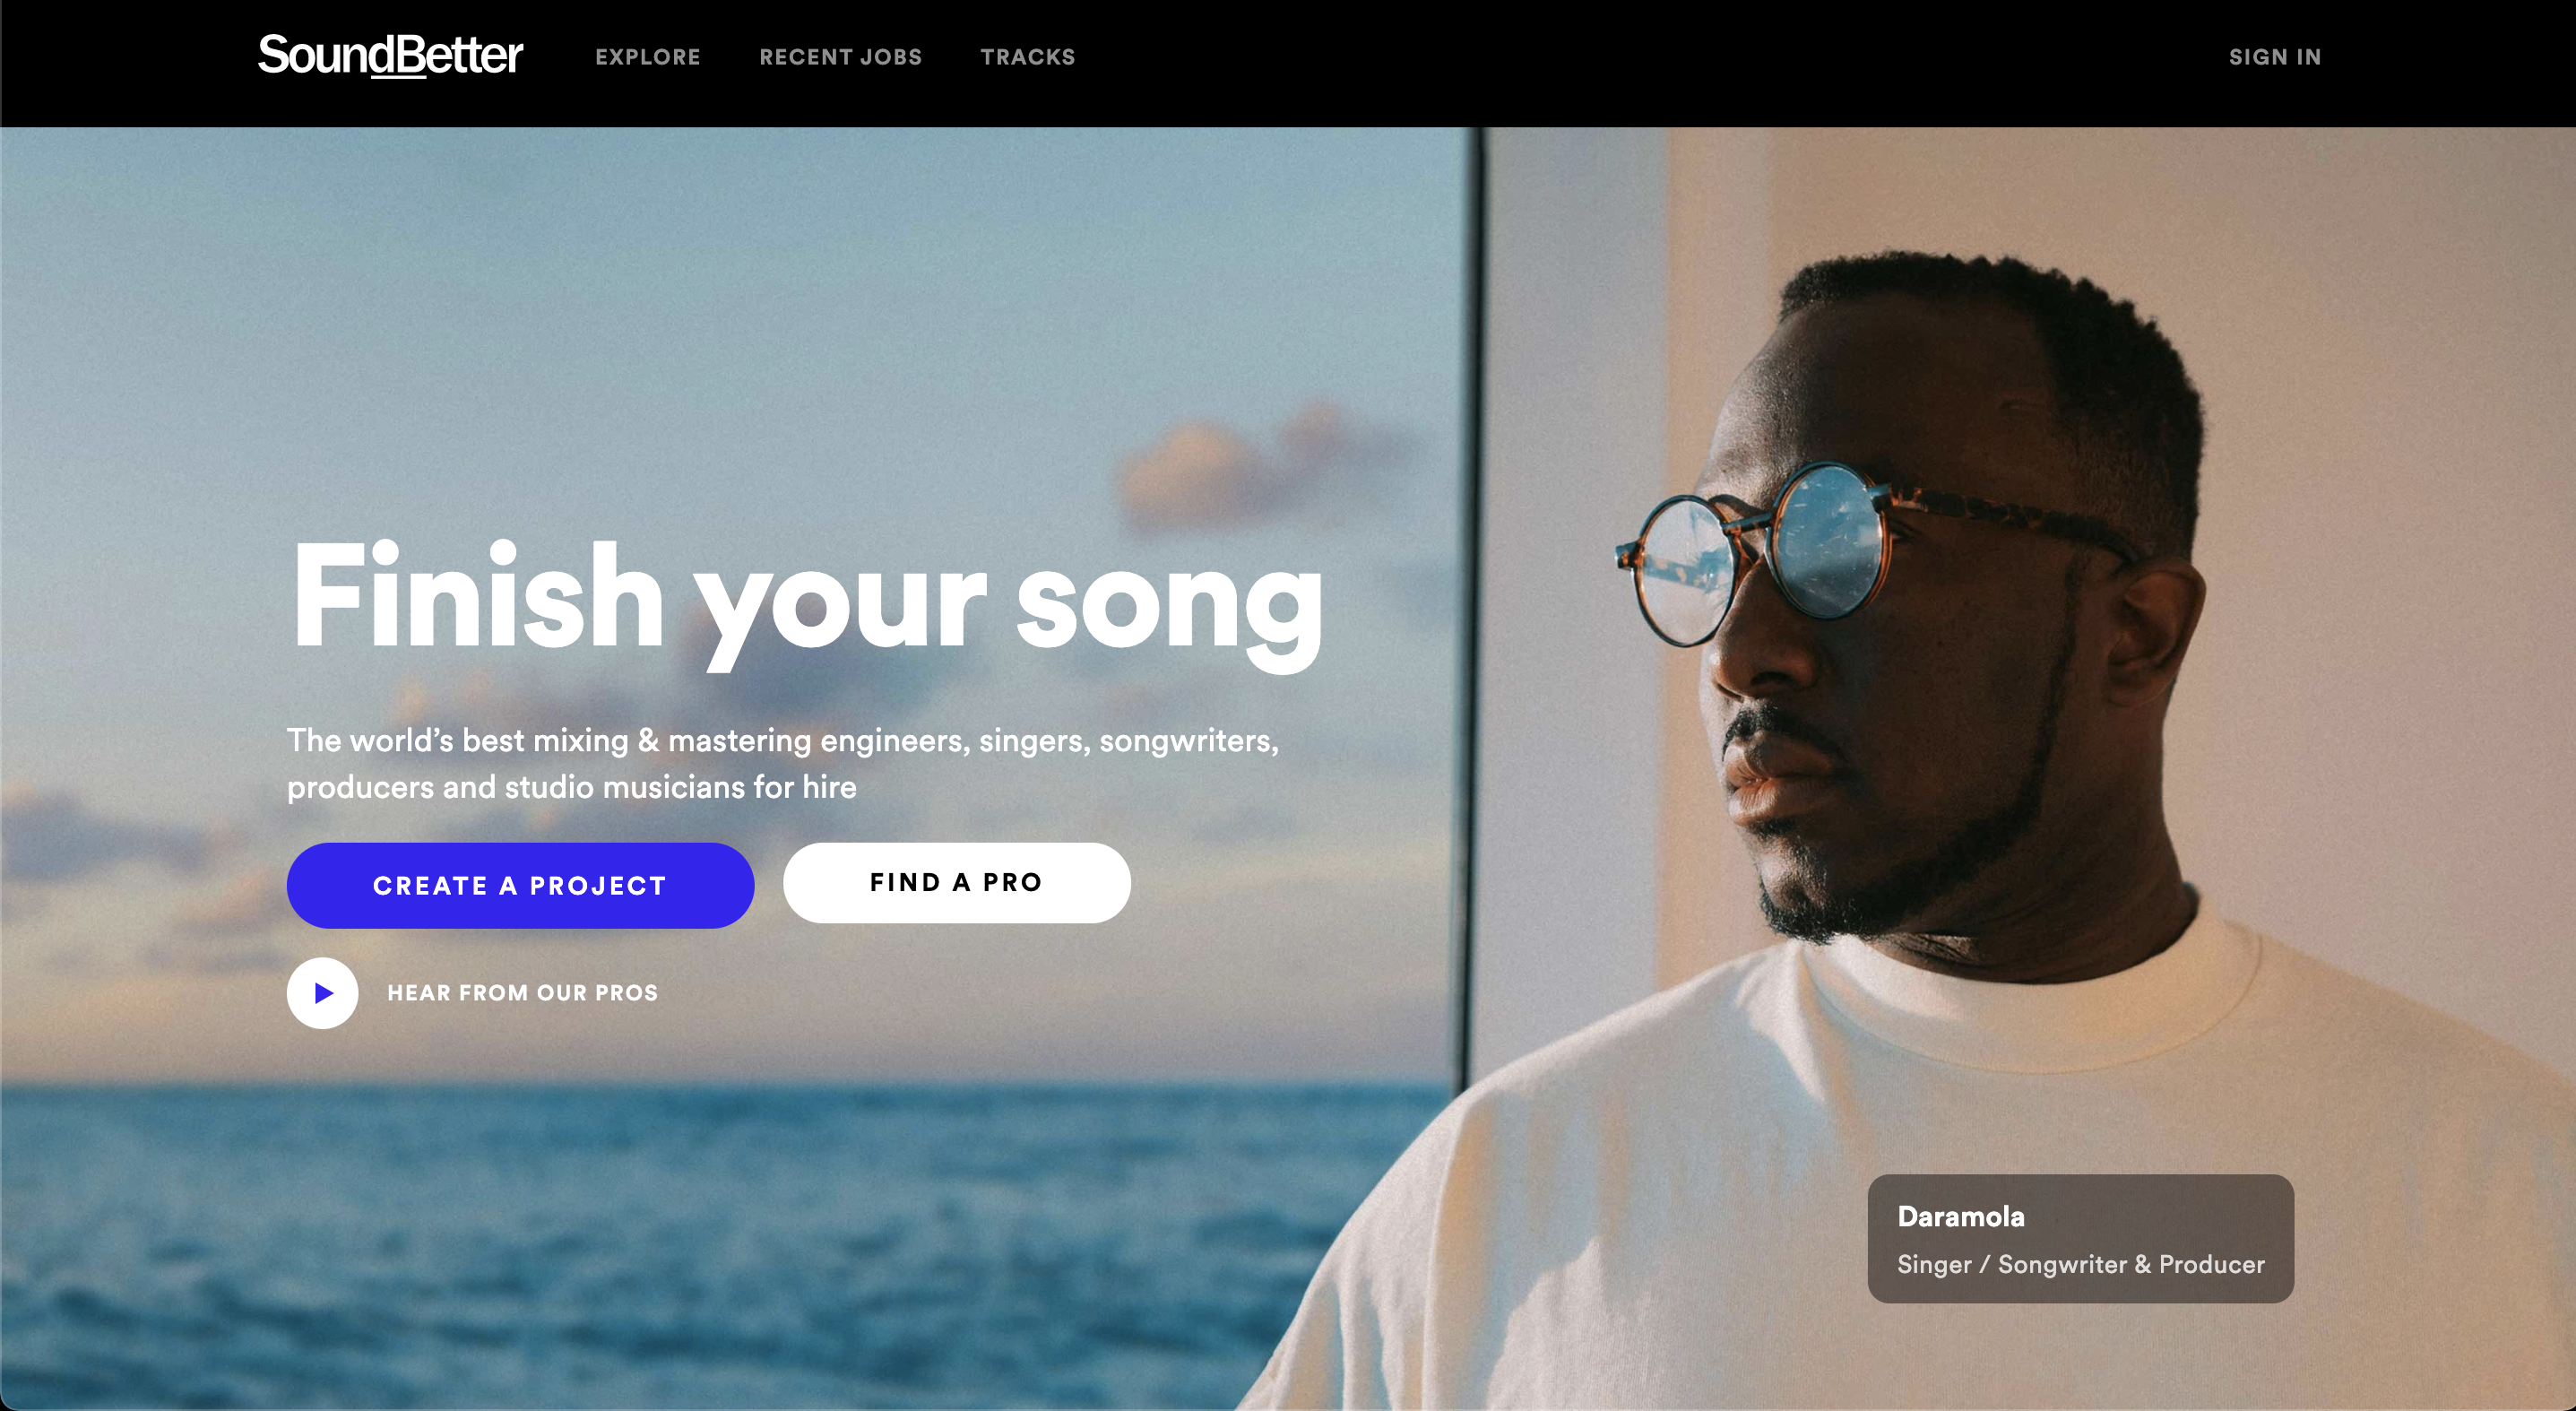 We replatformed Spotify's acquired product SoundBetter to make it more highly available.